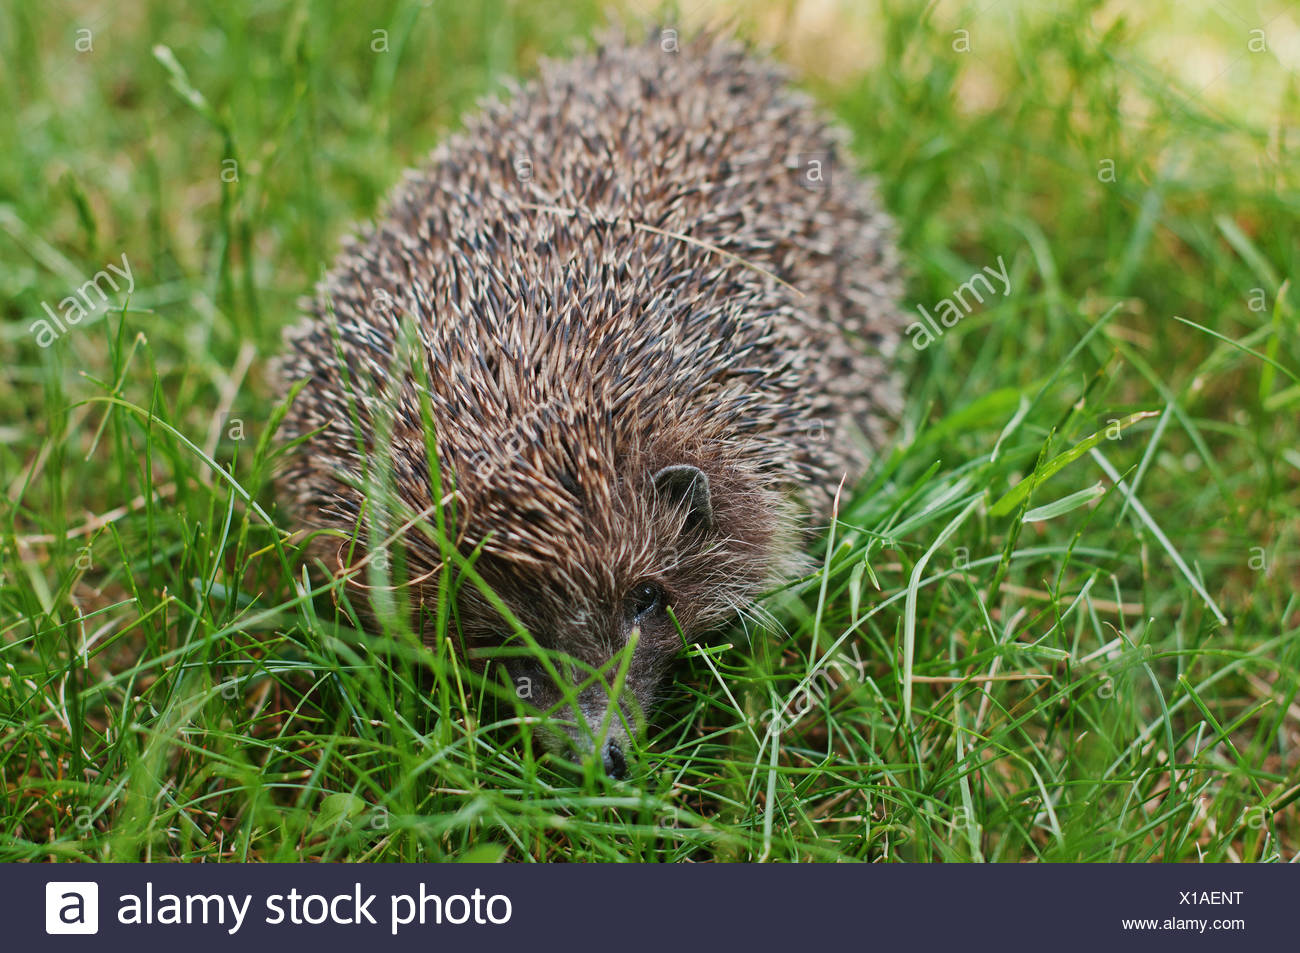 hedgehog on the green grass - Stock Image